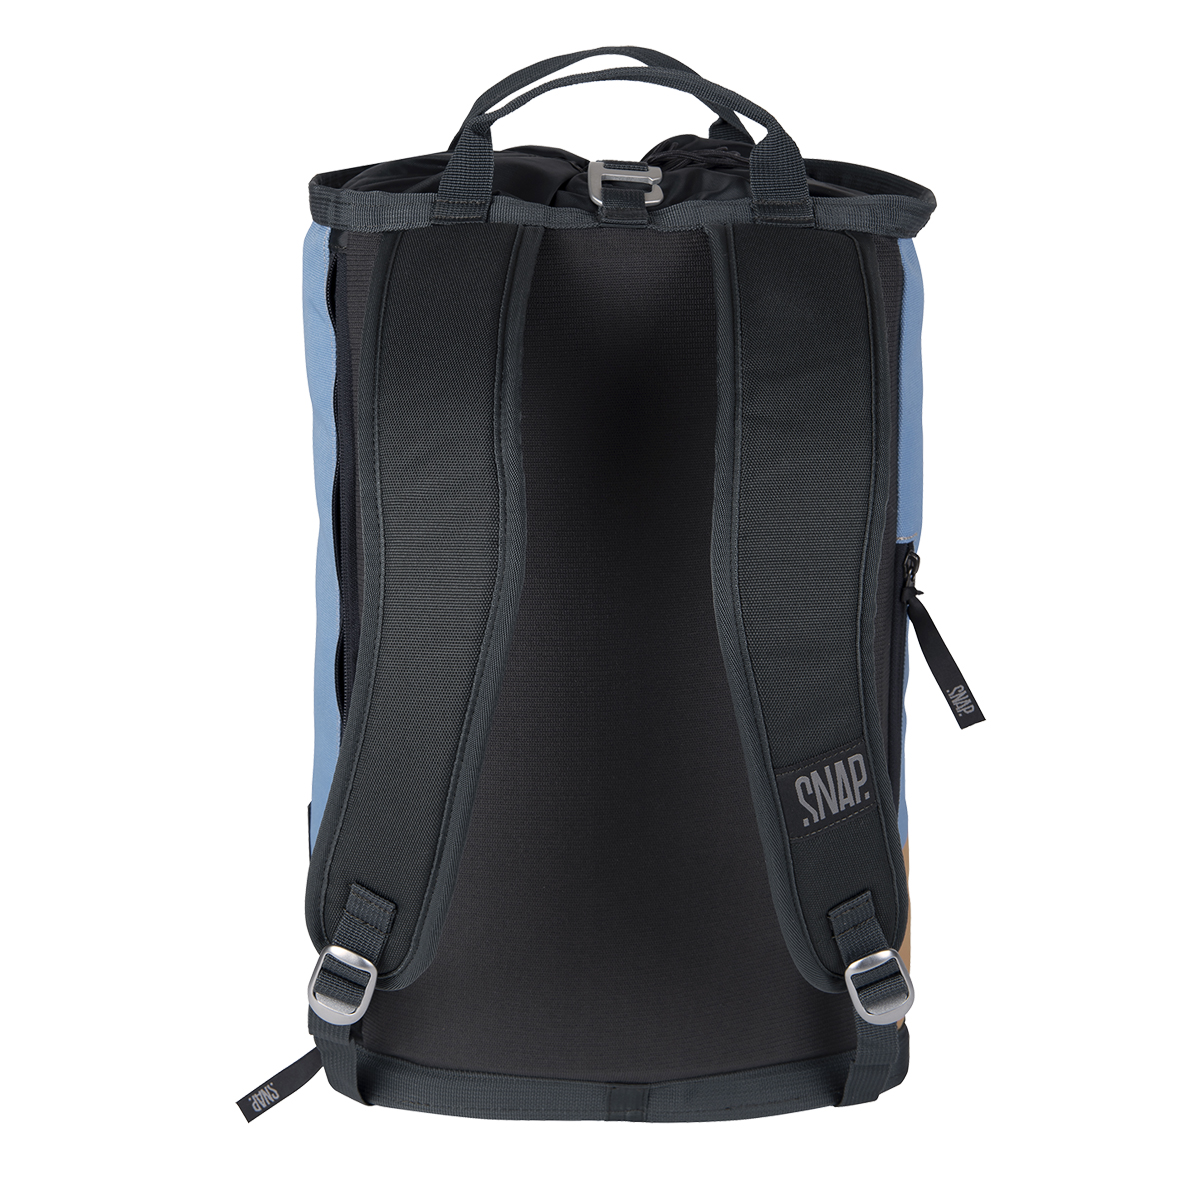 haulbag dietrich backpack for laptop back view